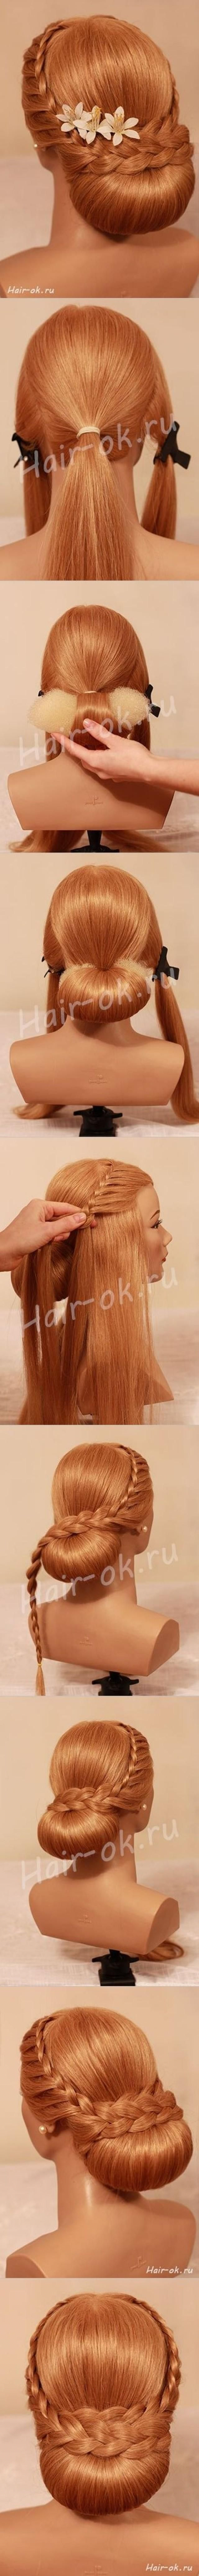 Weddbook is a content discovery engine mostly specialized on wedding concept. You can collect images, videos or articles you discovered  organize them, add your own ideas to your collections and share with other people | White and Gold Wedding. Bridesmaid Hair. Natural Hair. braided hair tutorial